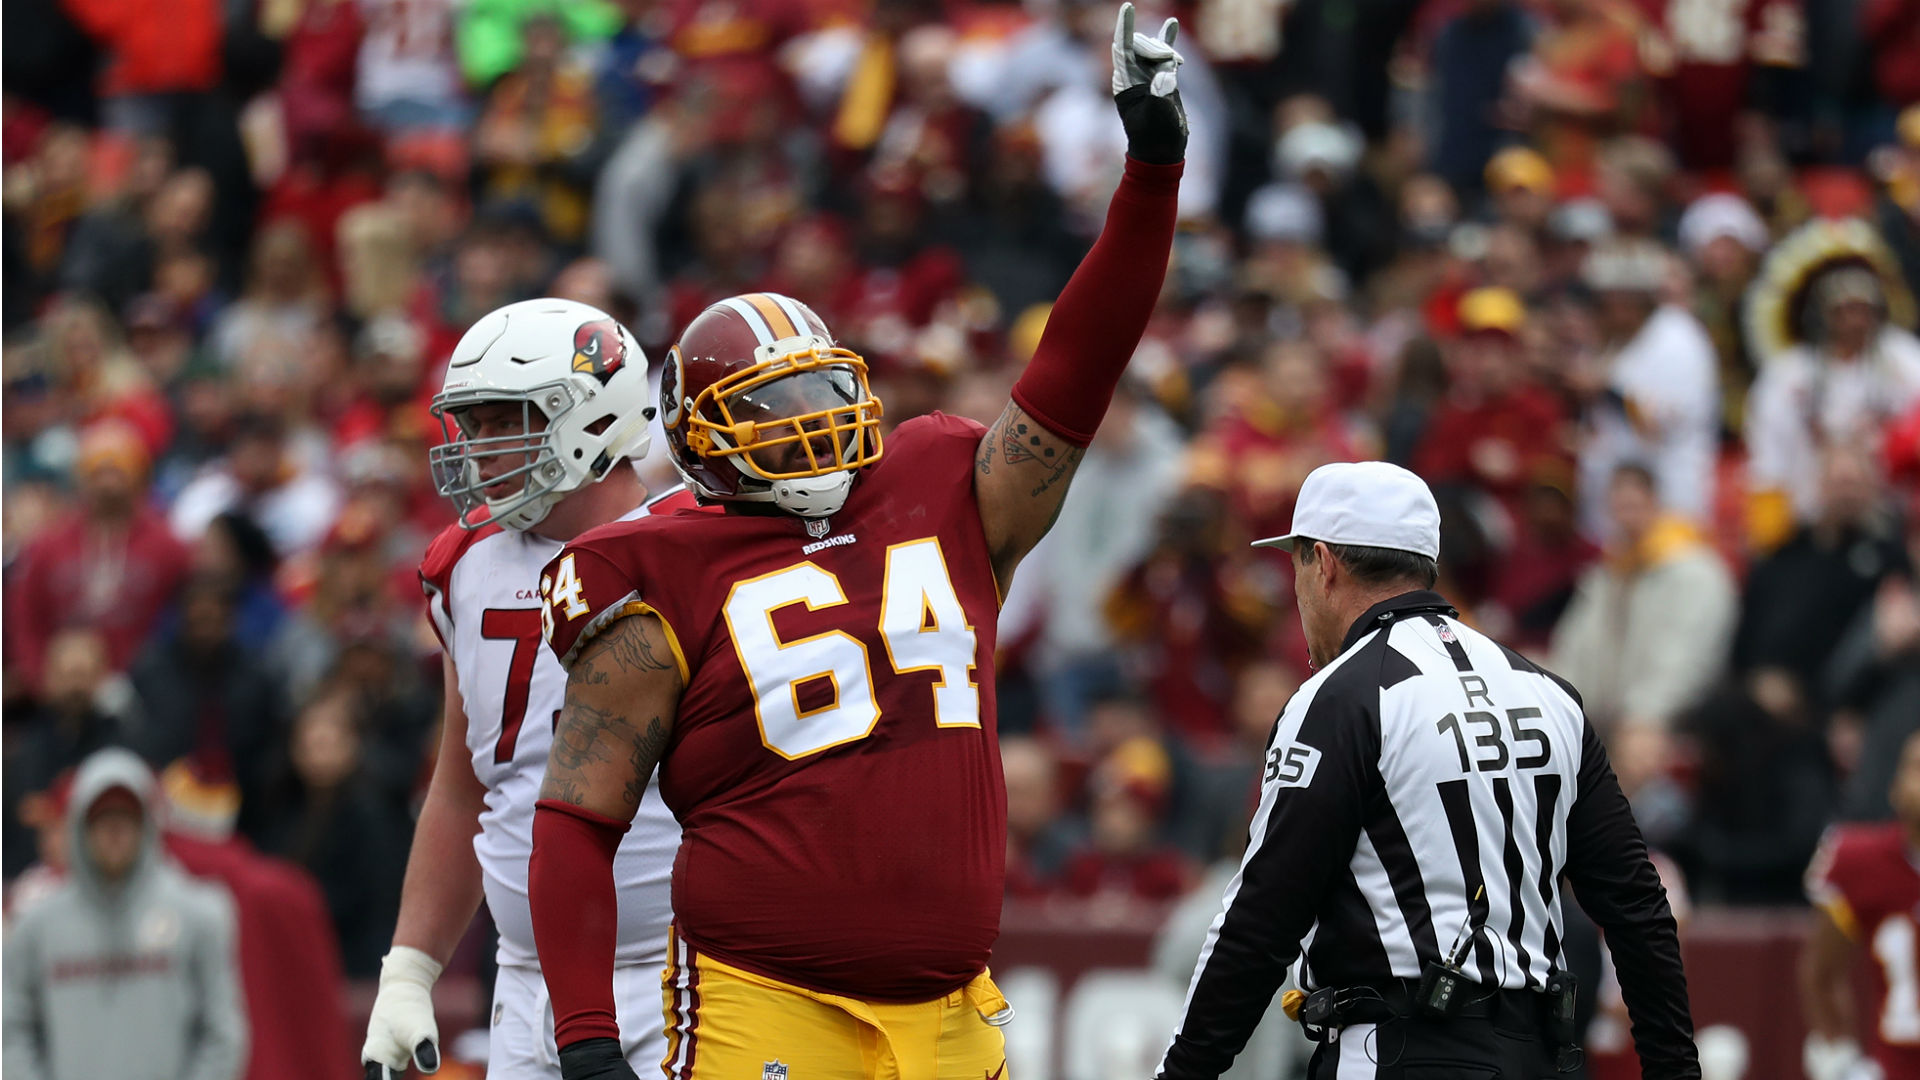 Giants sign Ex-Redskins DT AJ Francis, rips former team